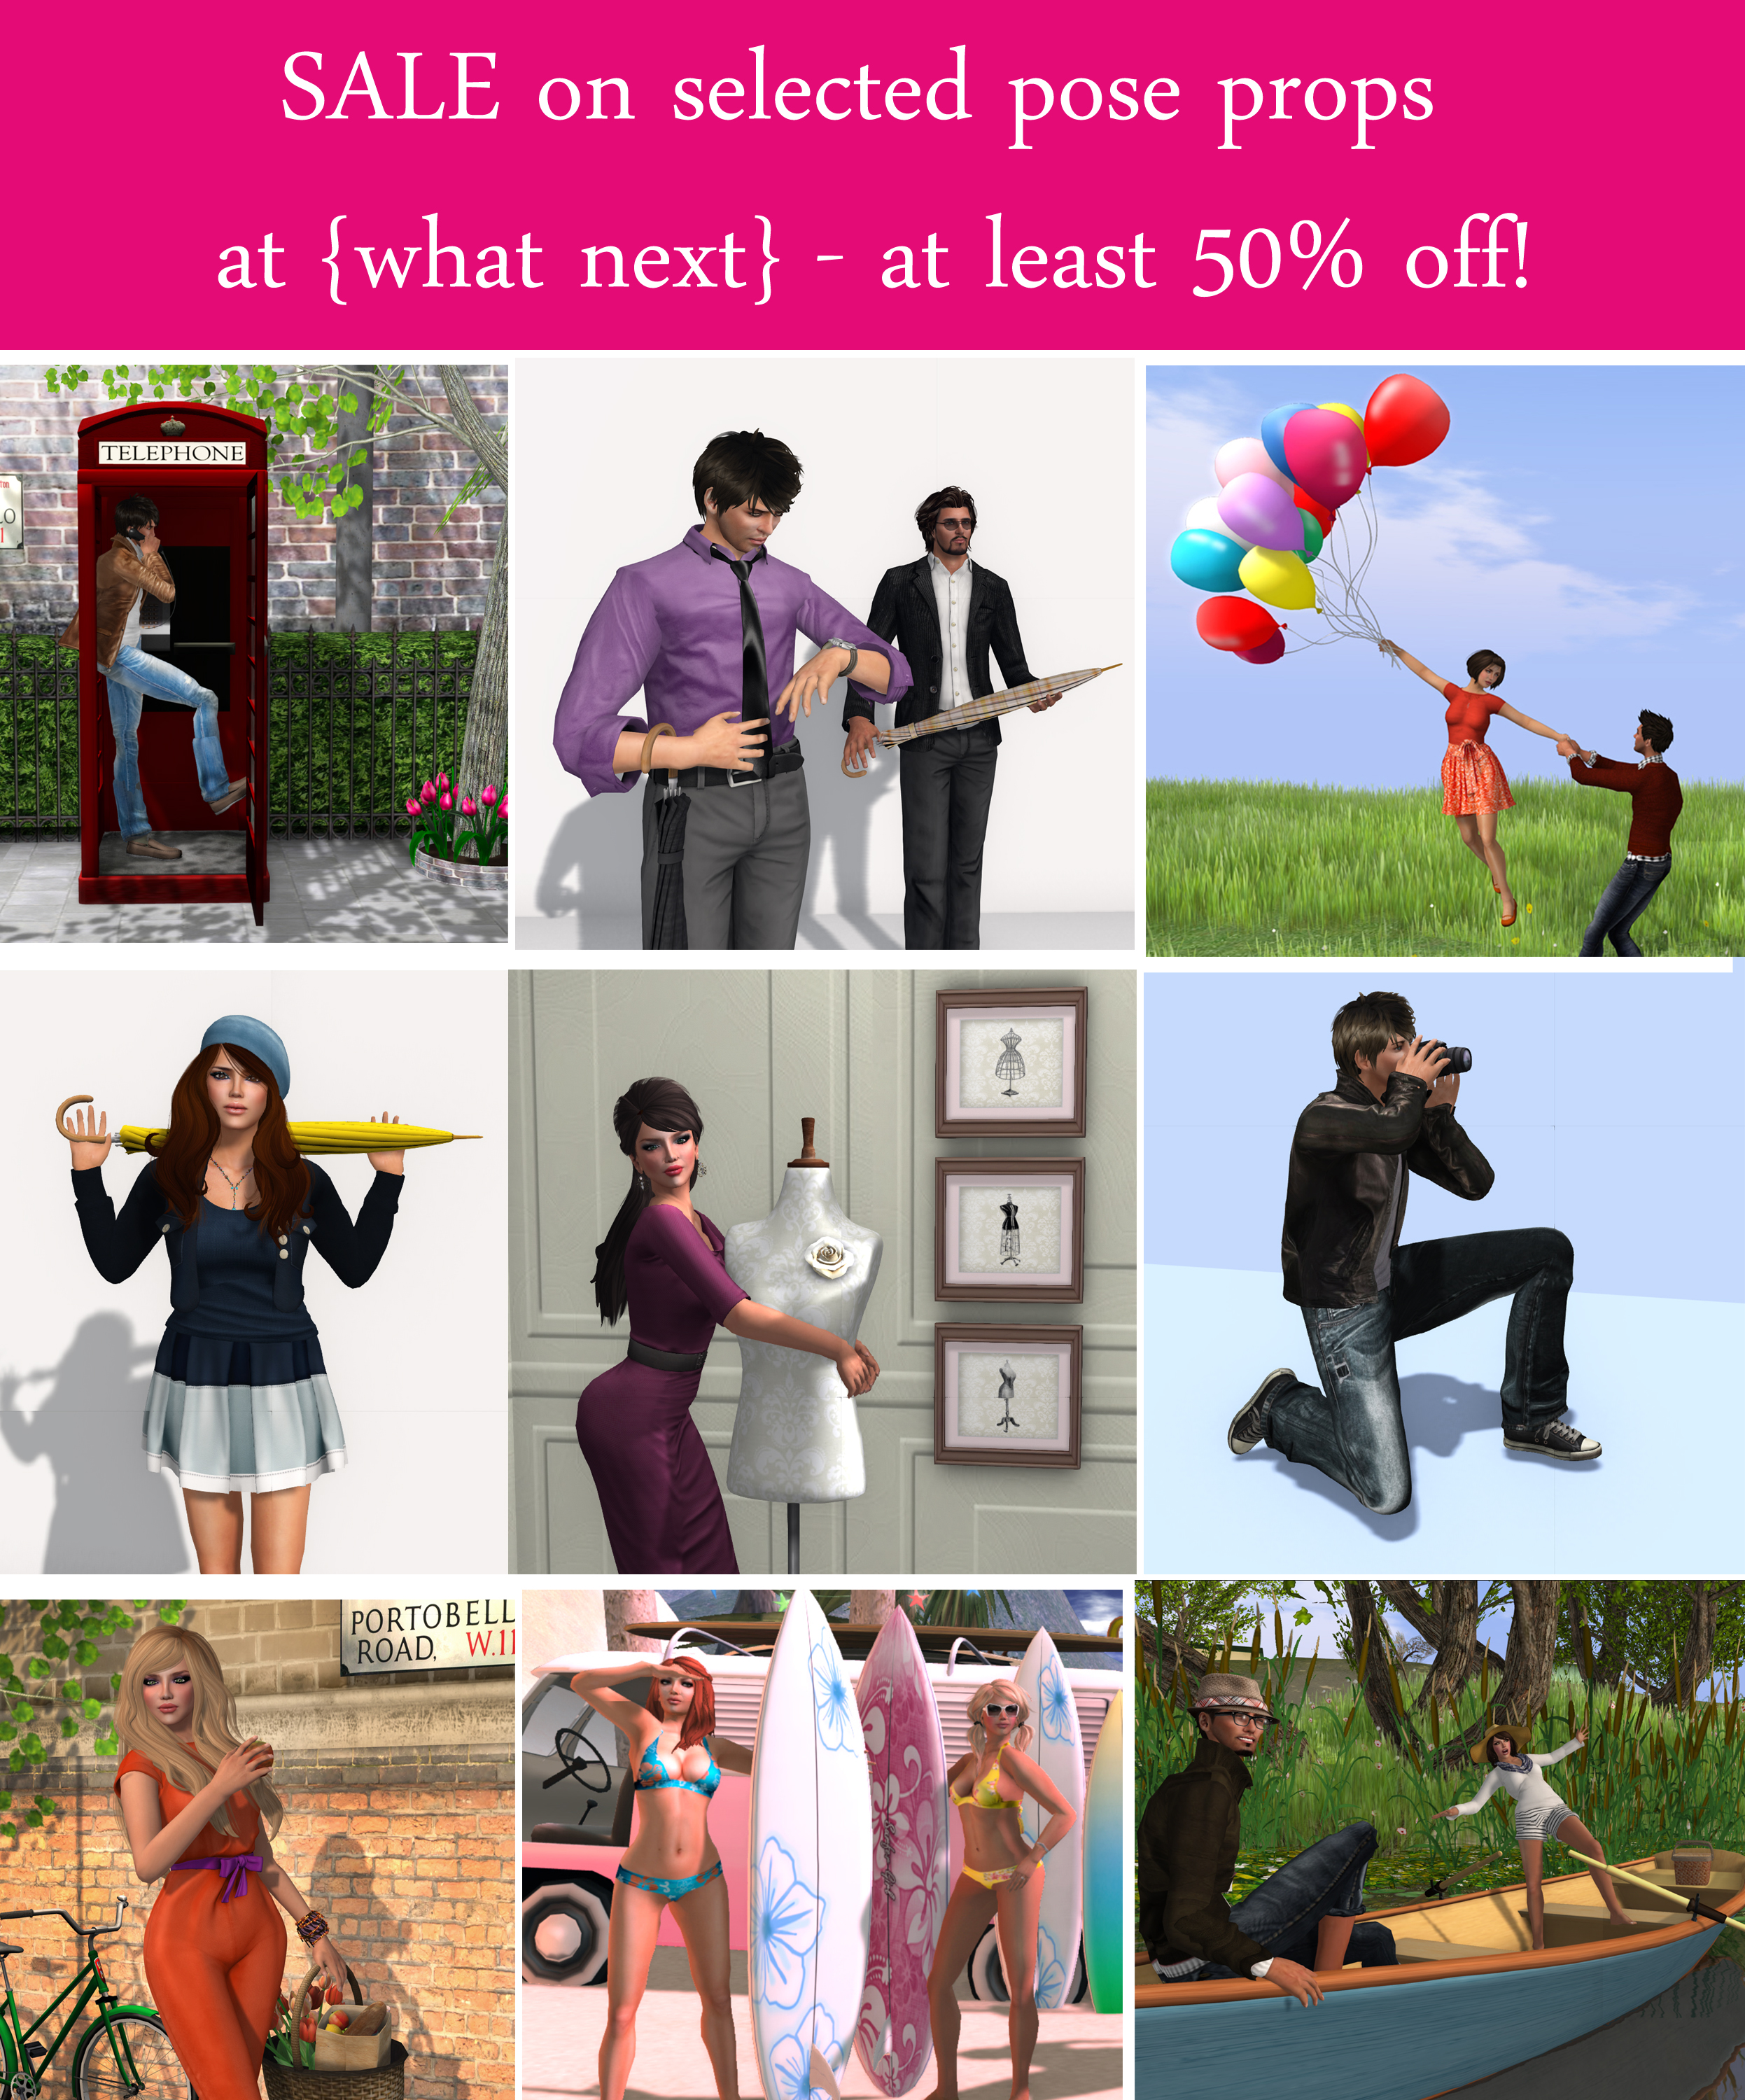 50% Off Pose Prop Sale at {what next}